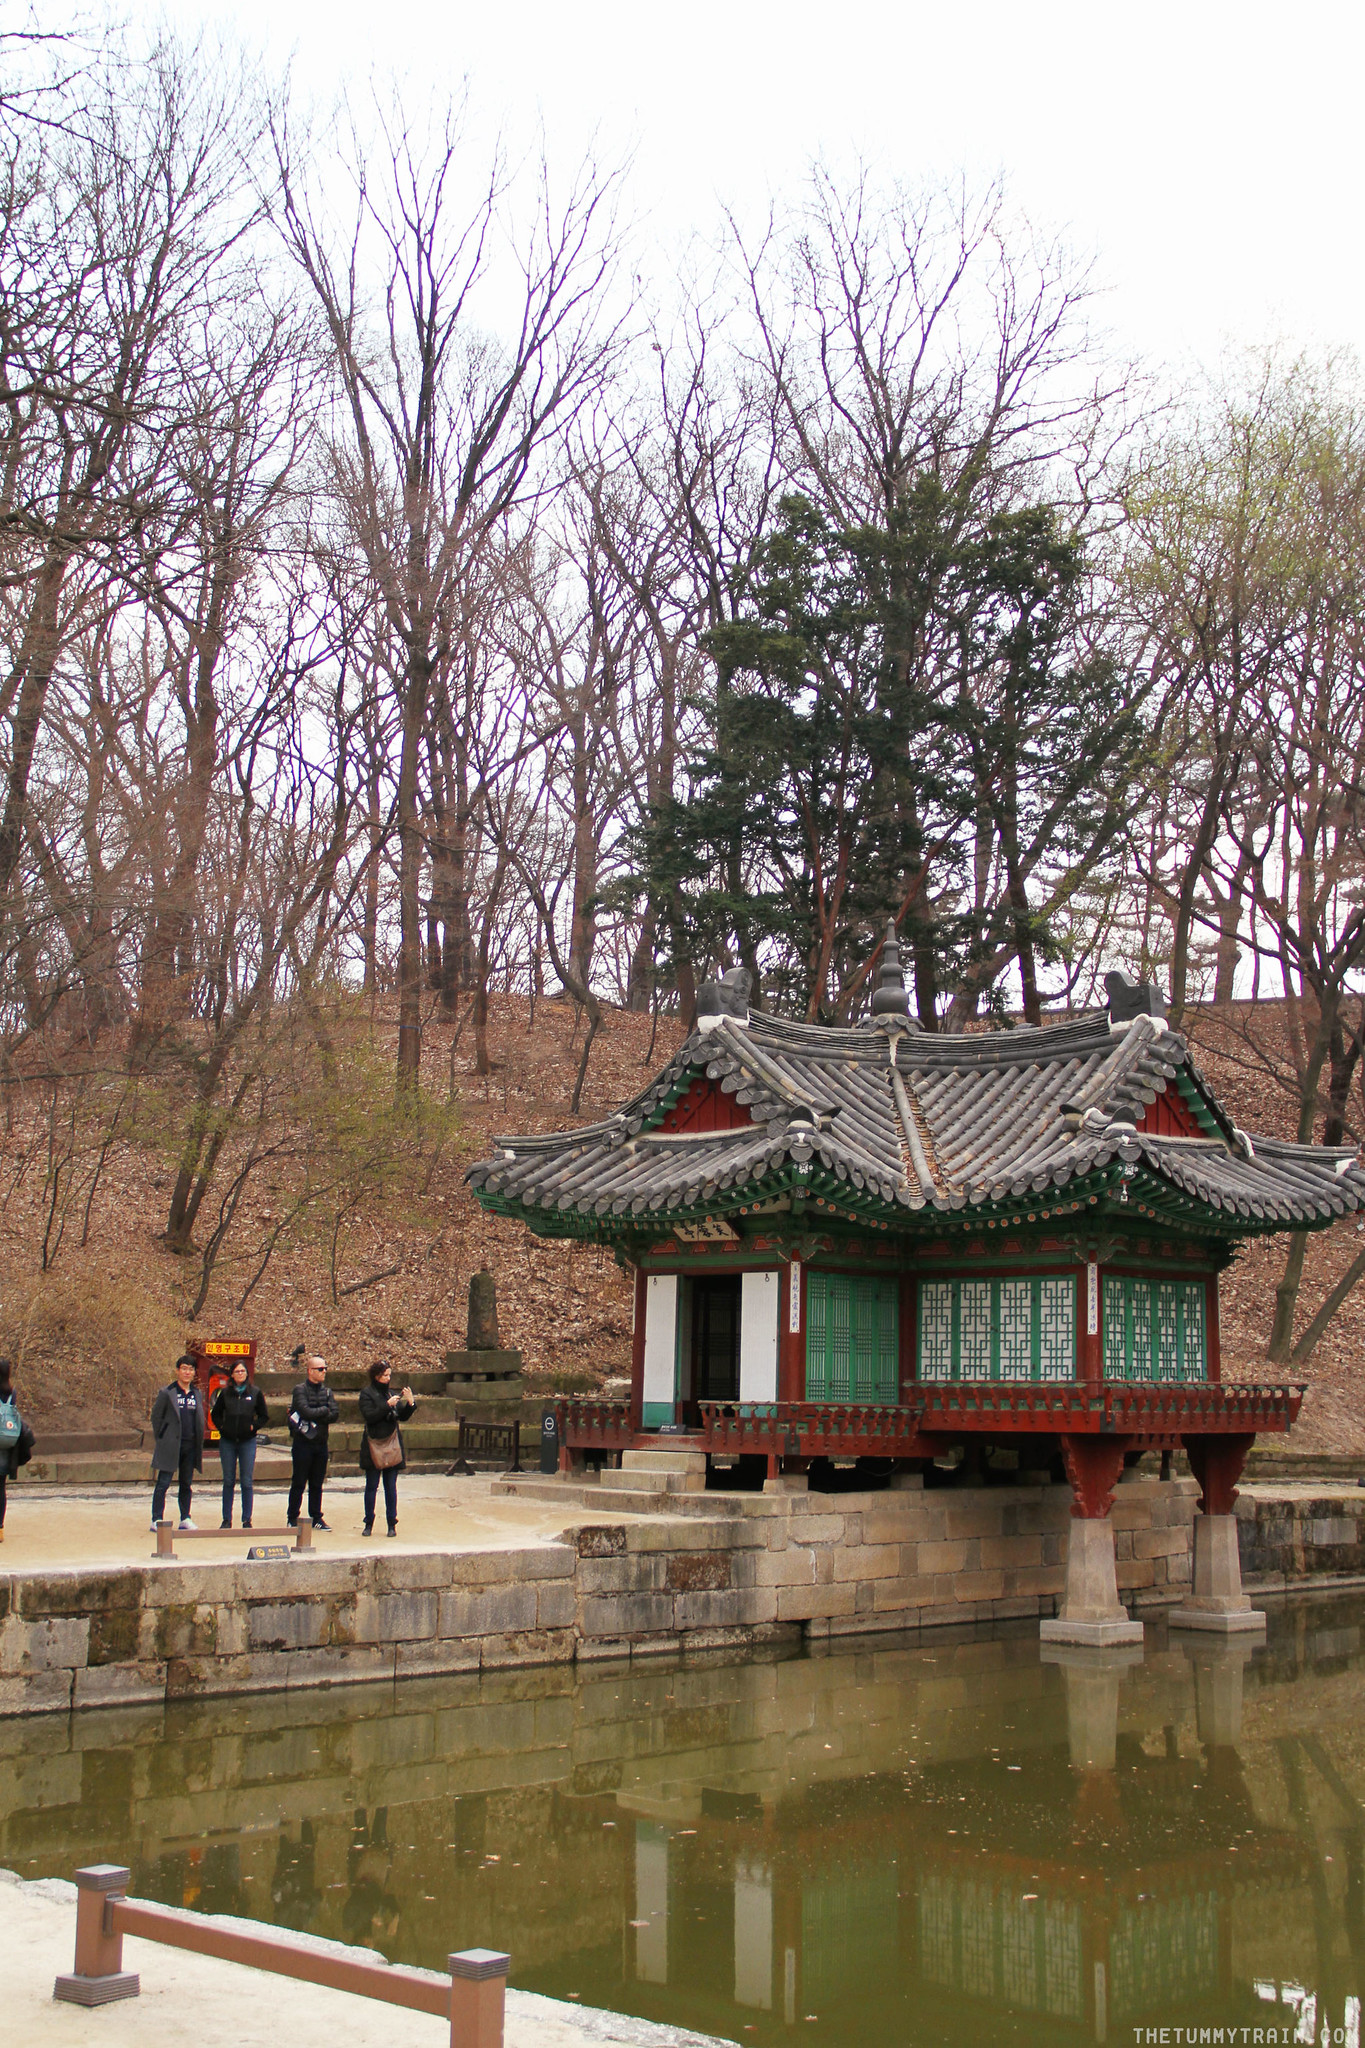 33530495395 fc87259f68 k - Seoul-ful Spring 2016: Greeting the first blooms at Changdeokgung Palace